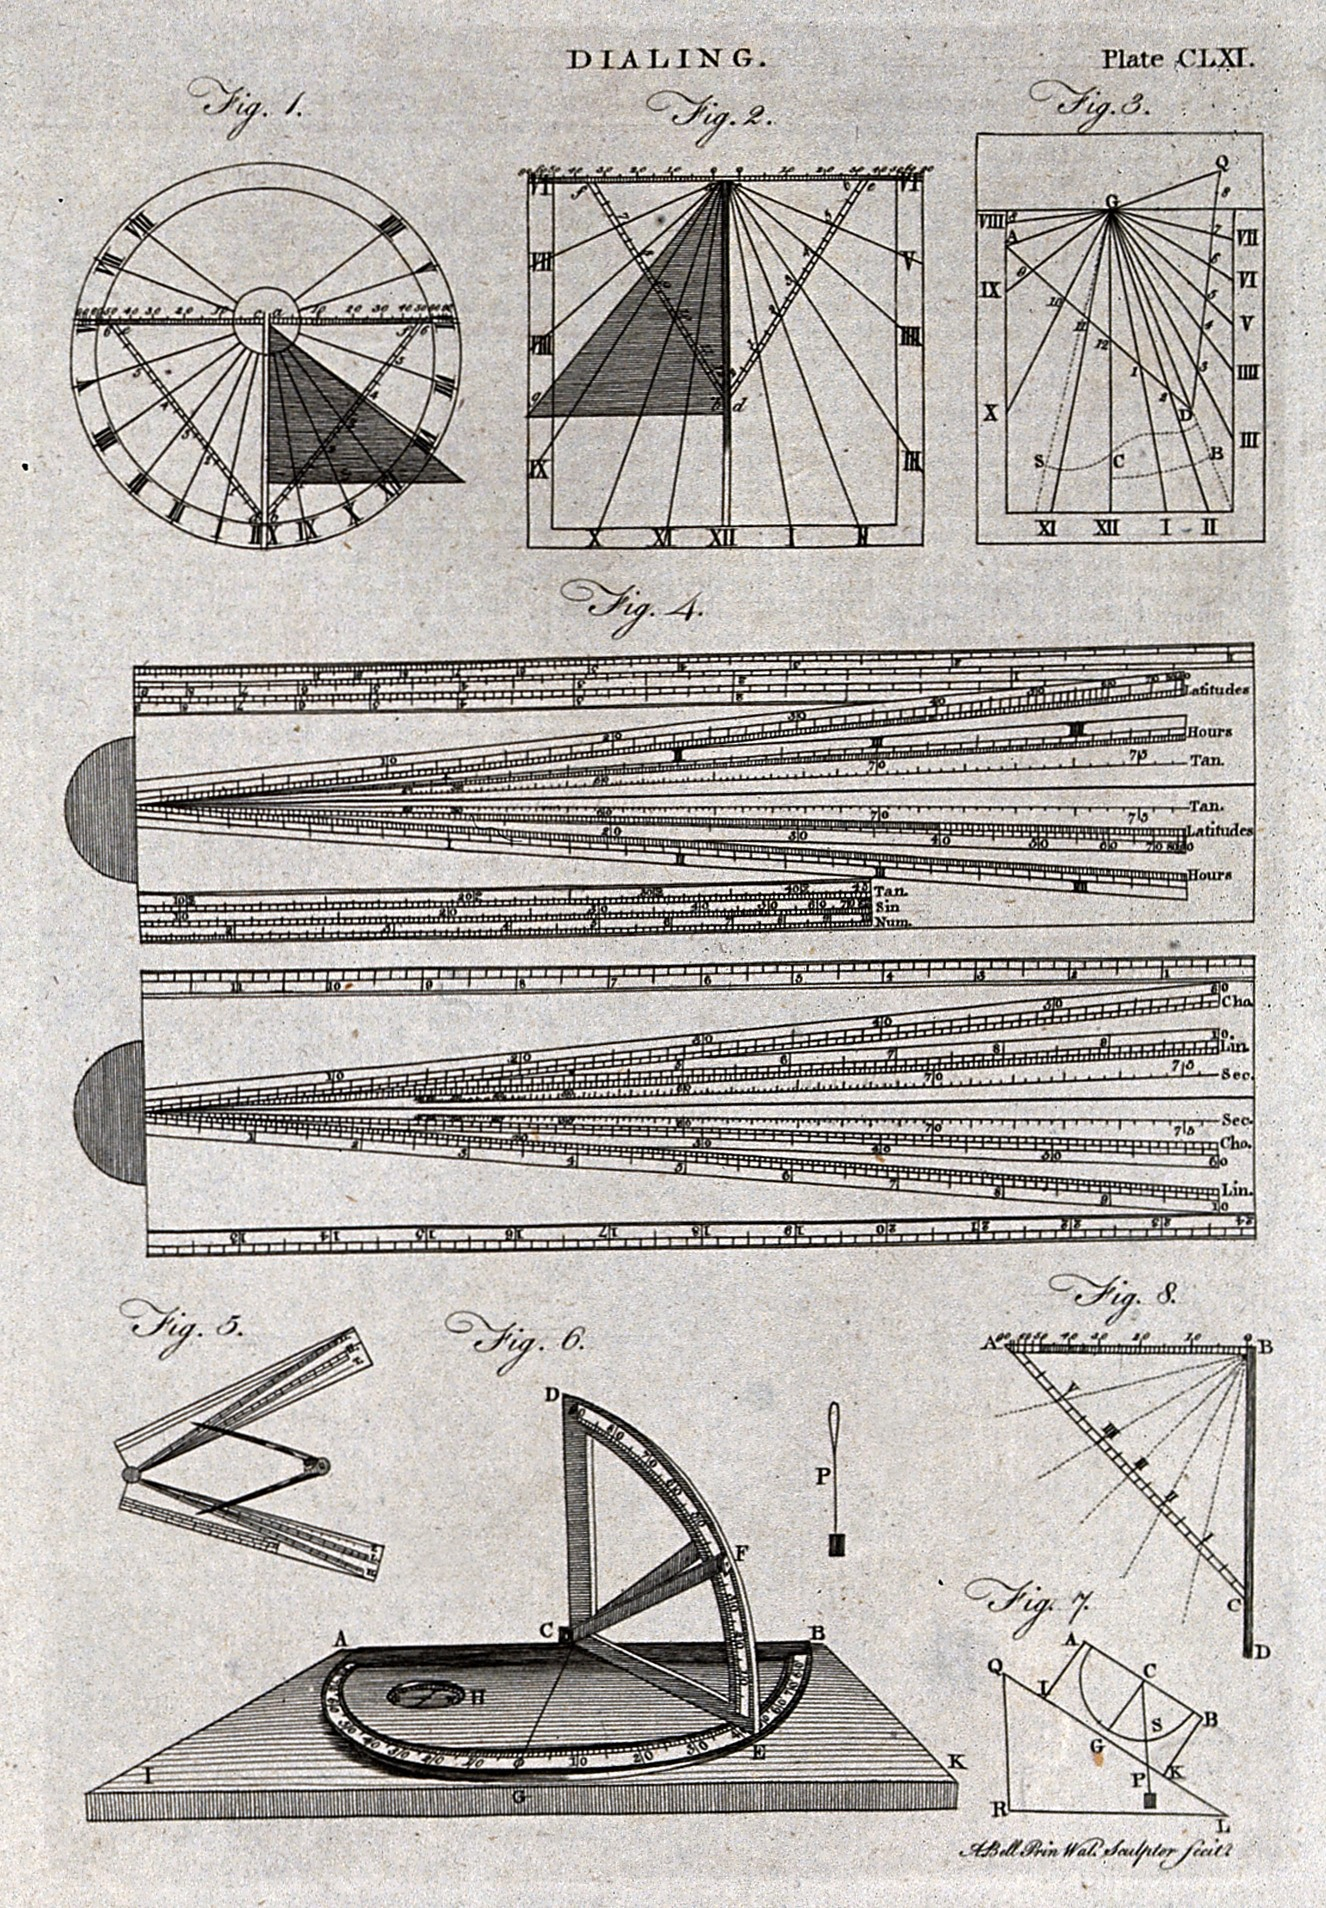 File:Civil engineering; diagrams for setting-out a dial. Engravin ...